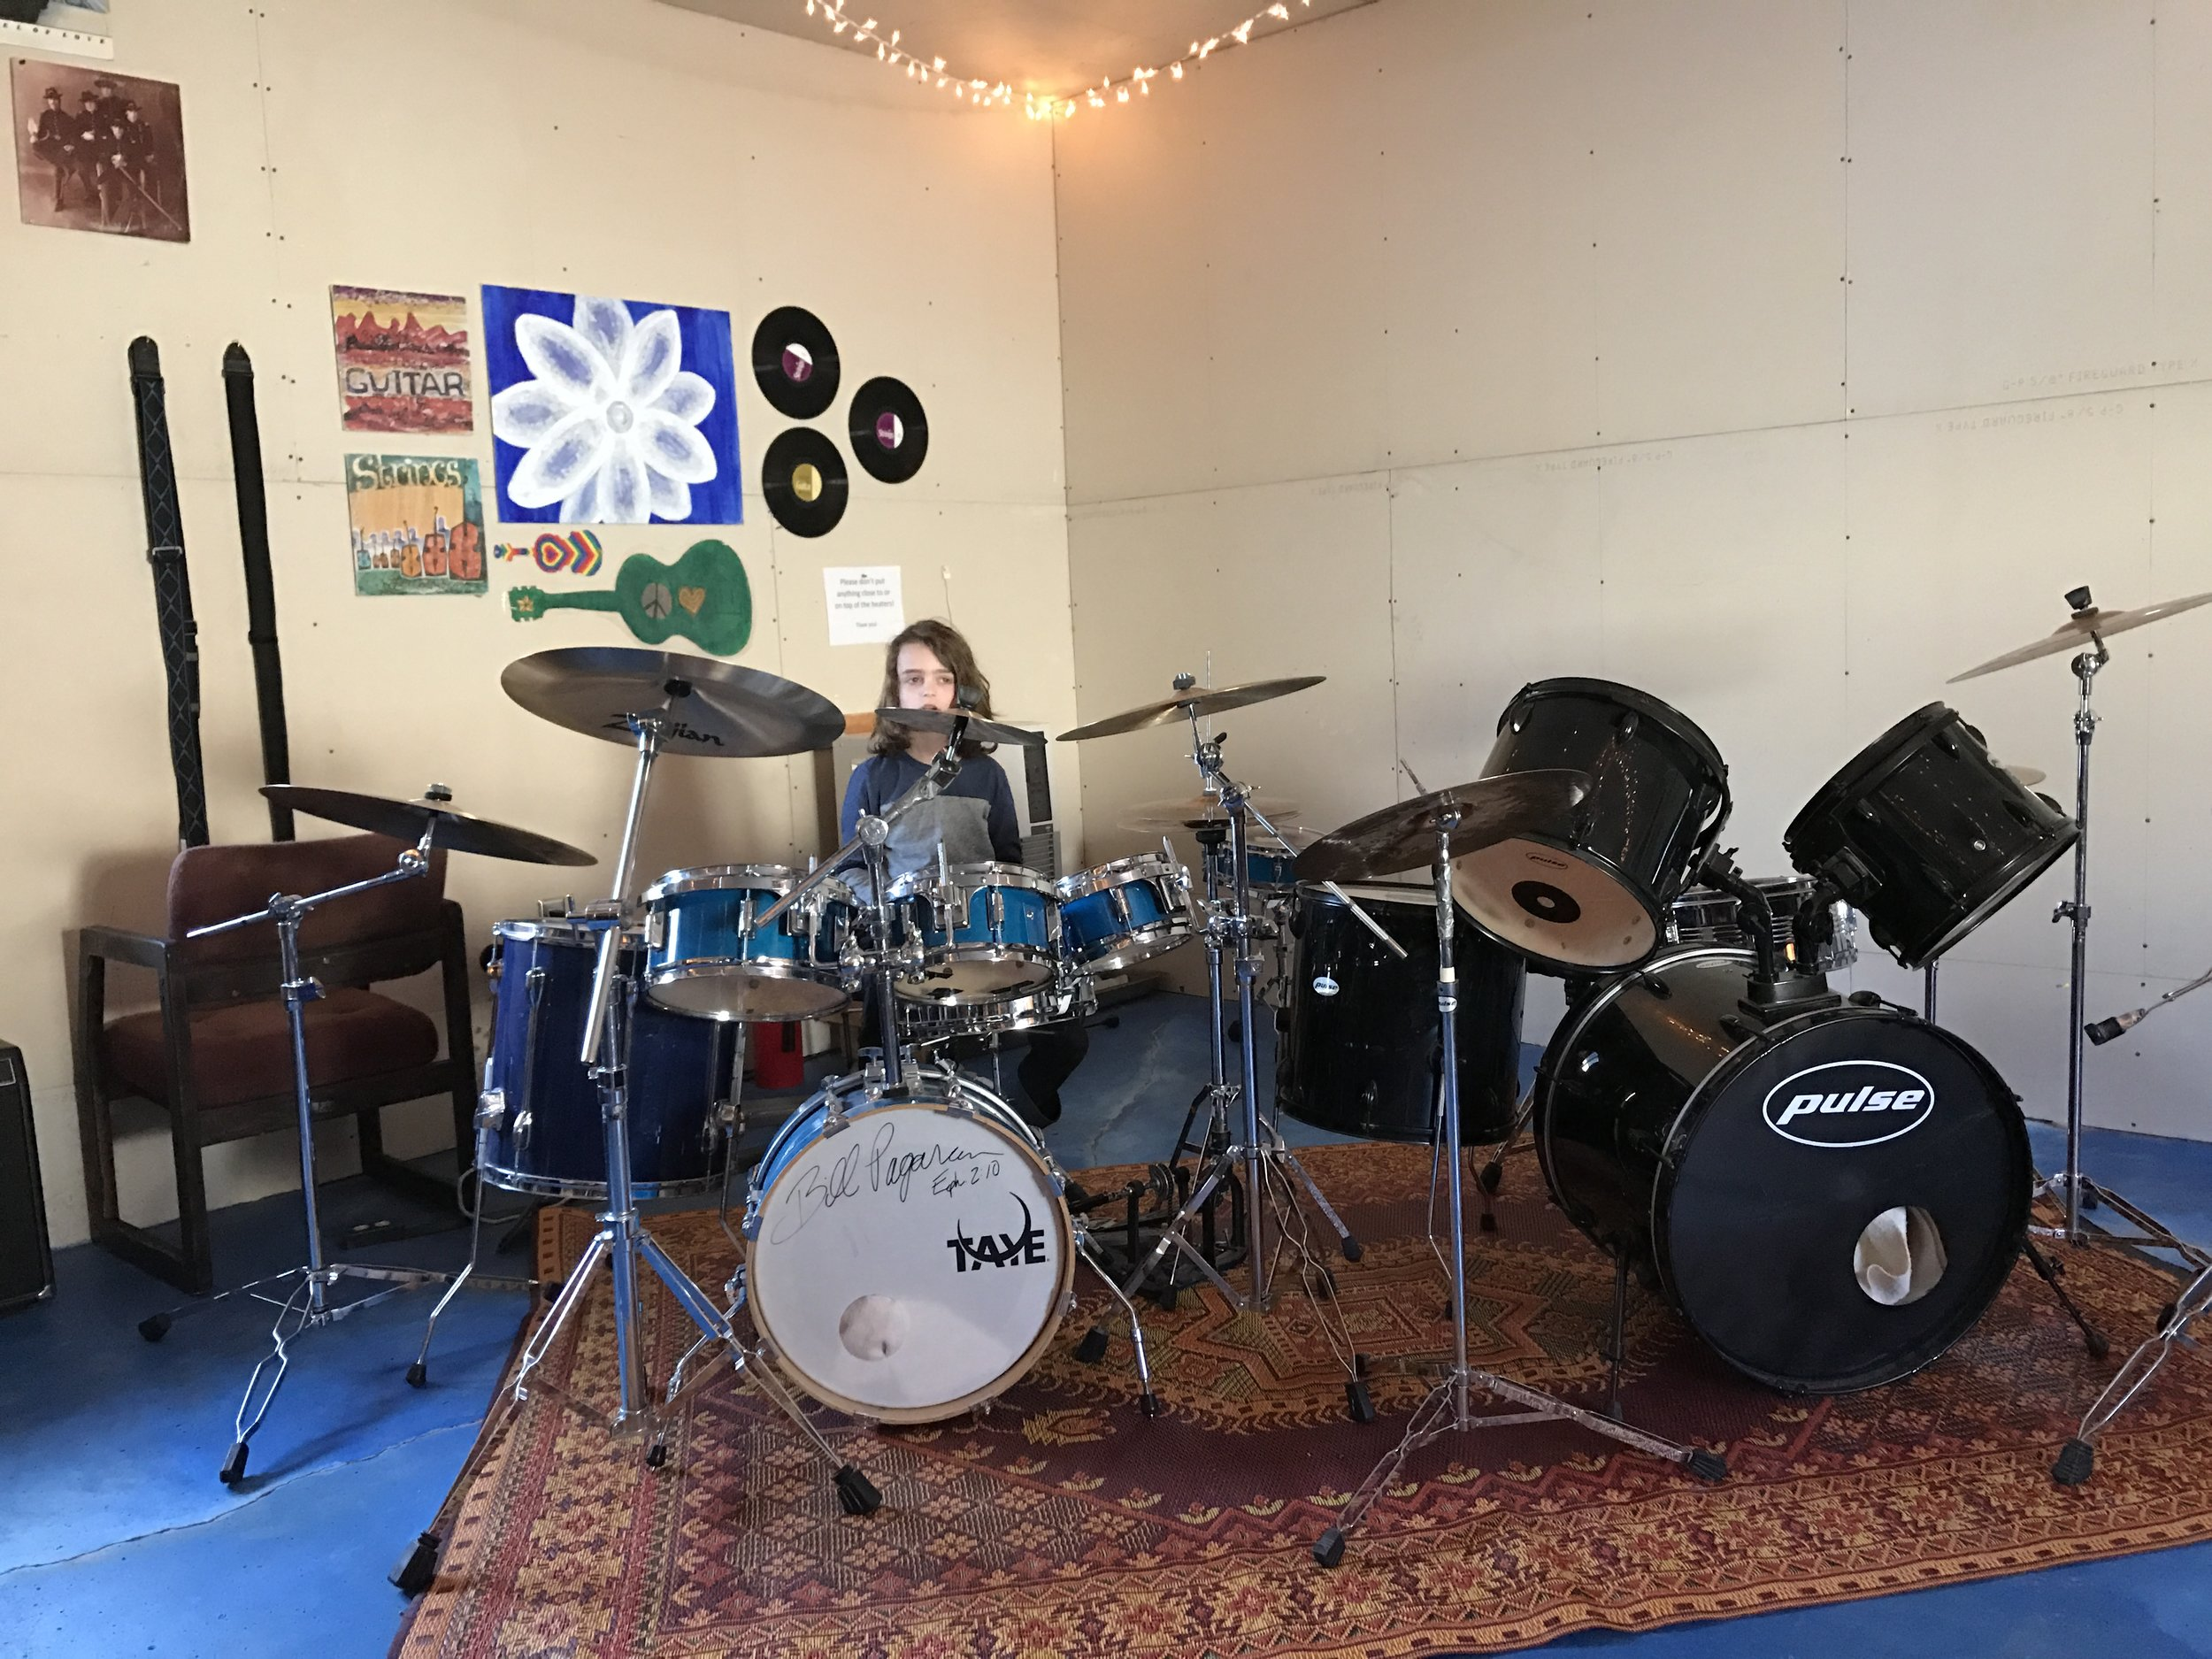 Otis tests the drums on the loud rock side of the music shack